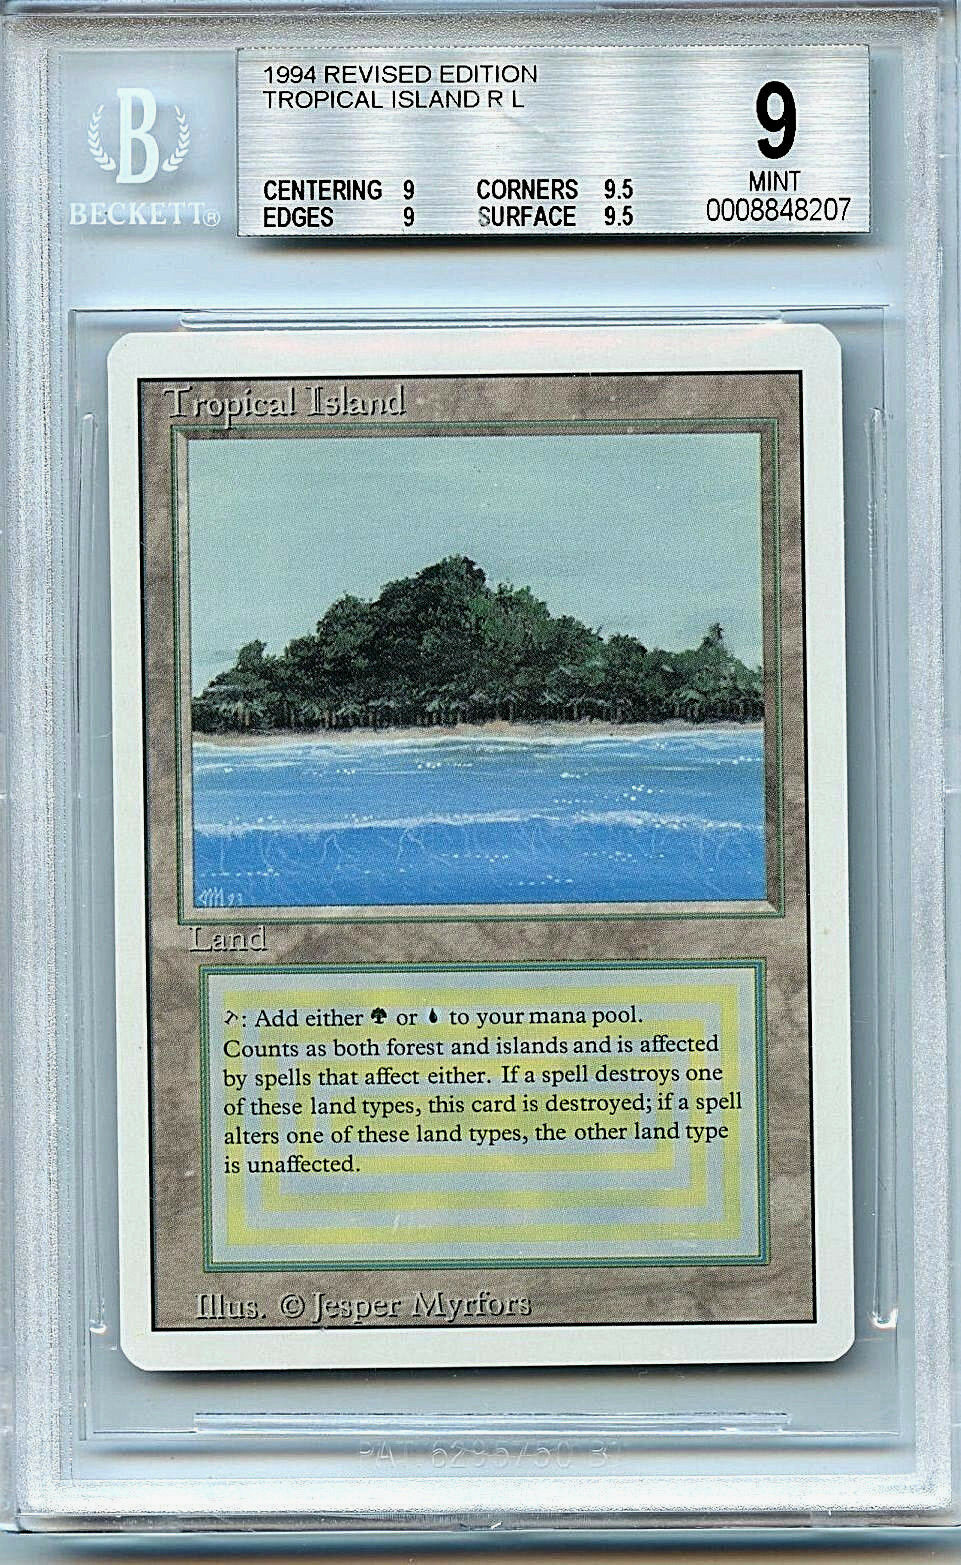 MTG Revised Dual Land Tropical Island BGS 9.0 (9) (9) (9) Card Magic WOTC 8207 b1ed5a